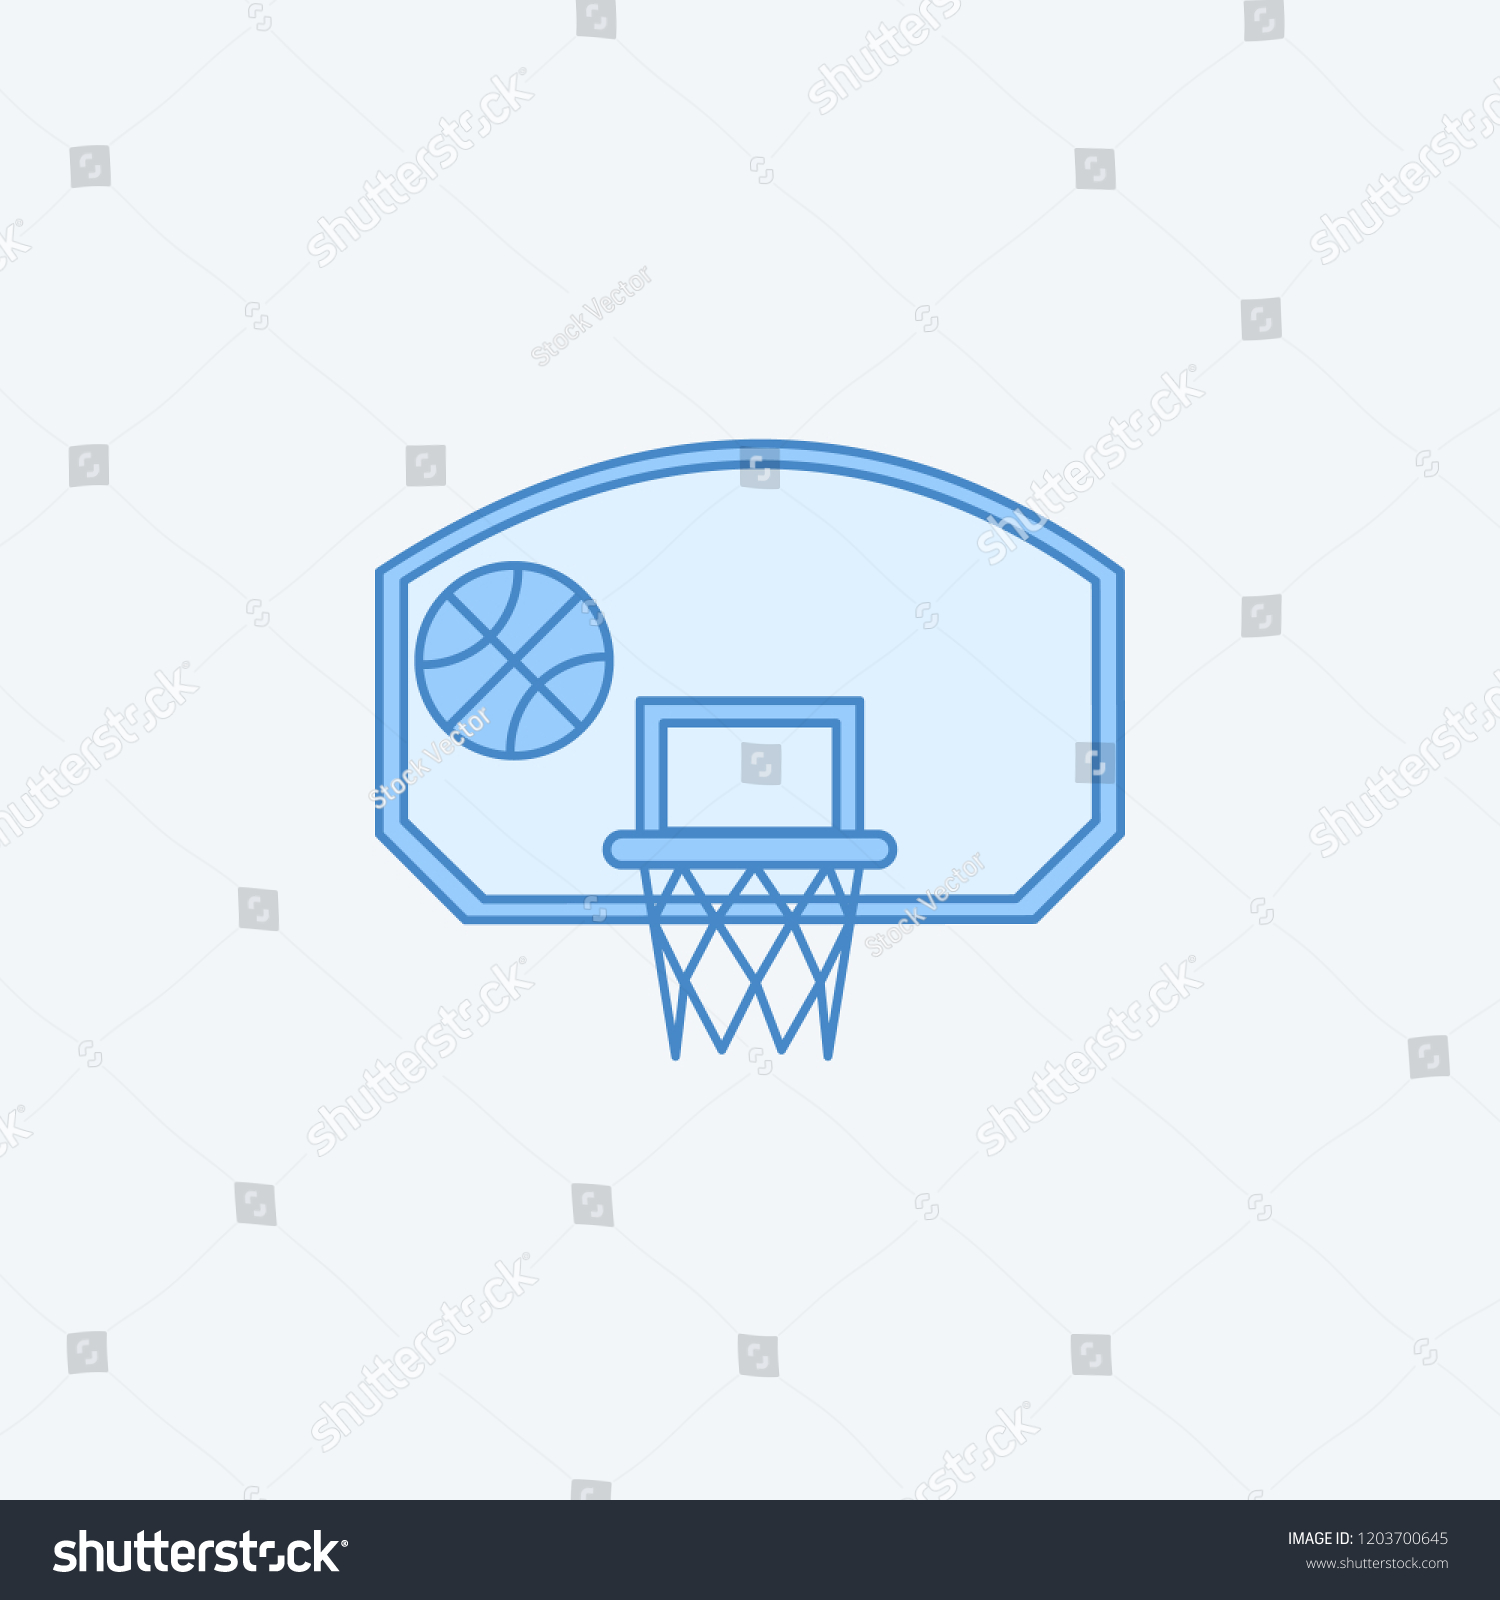 Basketball Hoop Ball 2 Colored Line Stock Vector Royalty Free Diagram With Icon Simple Dark And Light Blue Element Illustration